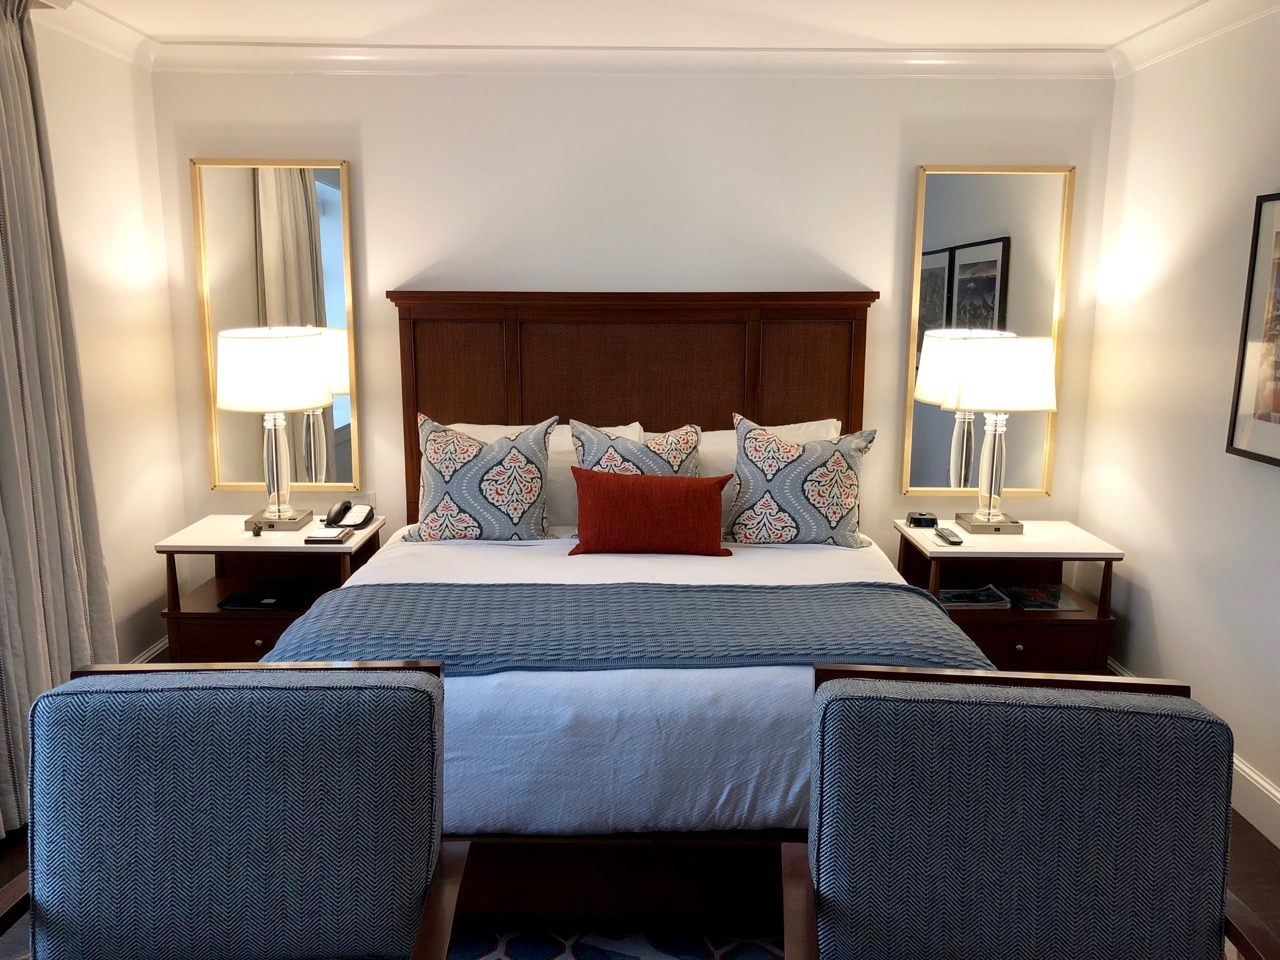 5 Reasons to Love the Suites at the Inn by the Sea